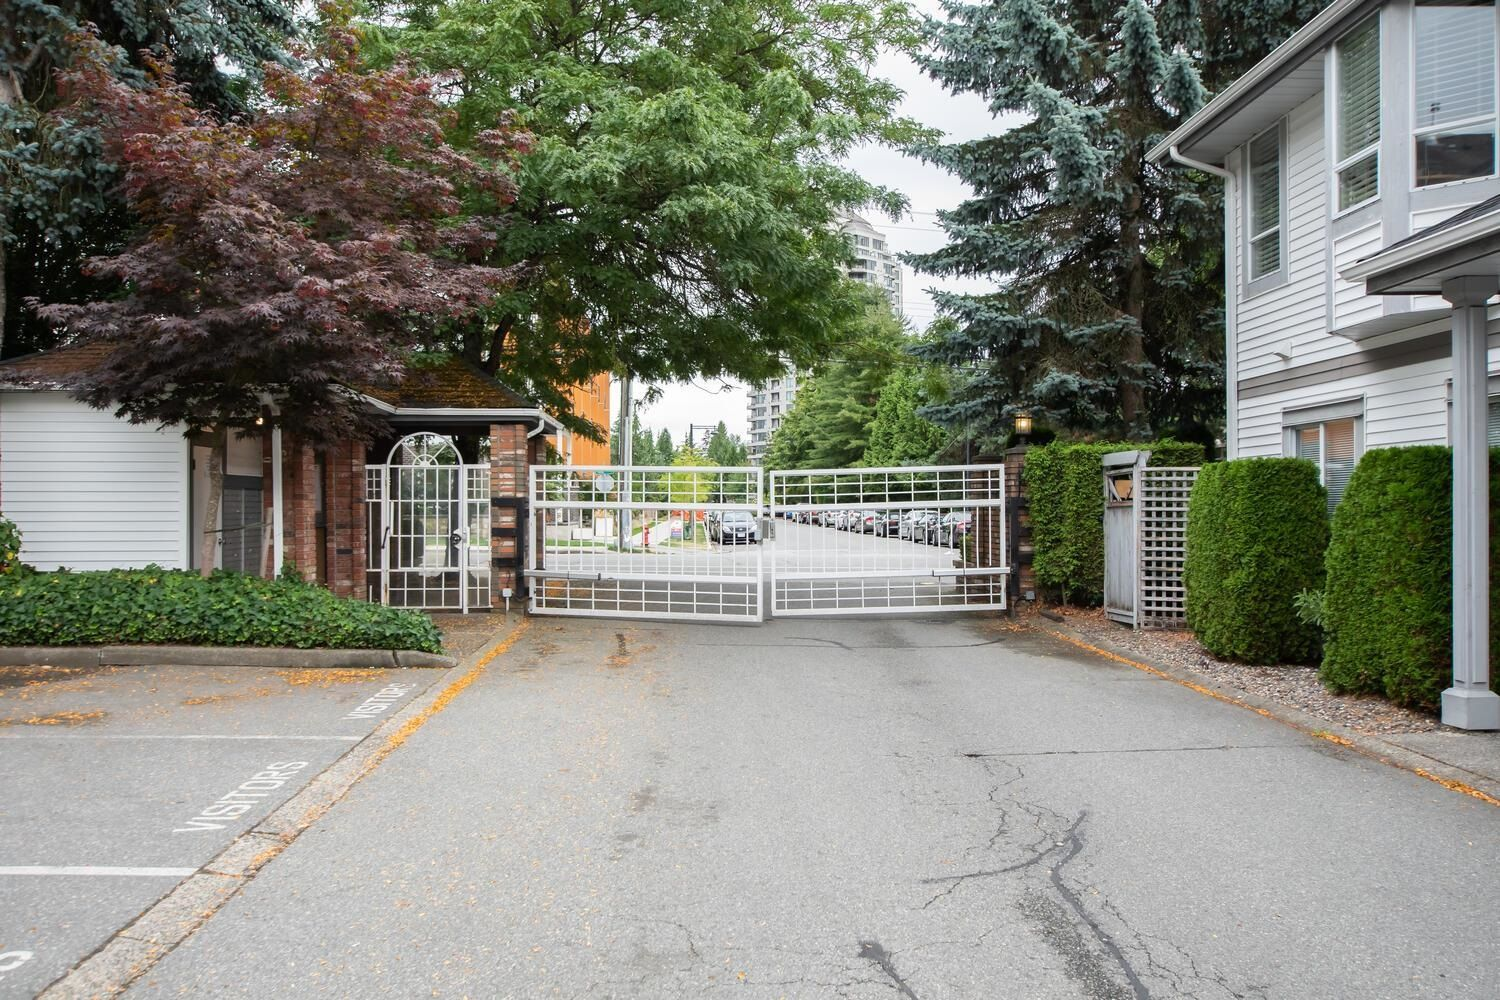 """Main Photo: 107 13895 102 Avenue in Surrey: Whalley Townhouse for sale in """"WHYDHAM ESTATES"""" (North Surrey)  : MLS®# R2610519"""